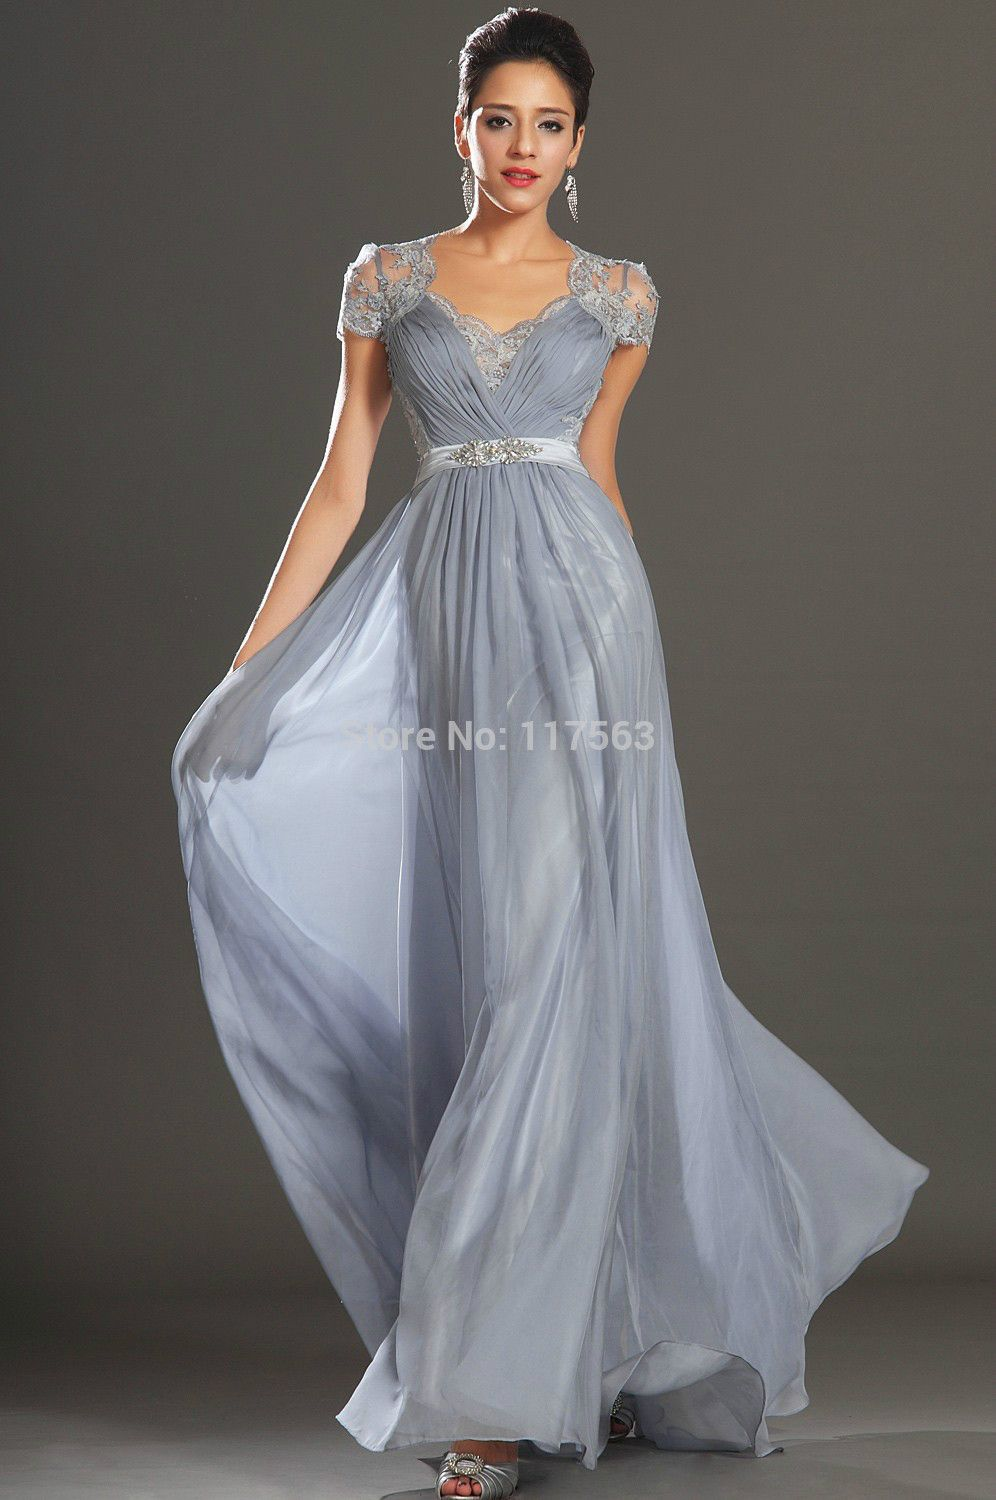 Related image | Prom Dress Ideas | Pinterest | Dress ideas and Prom